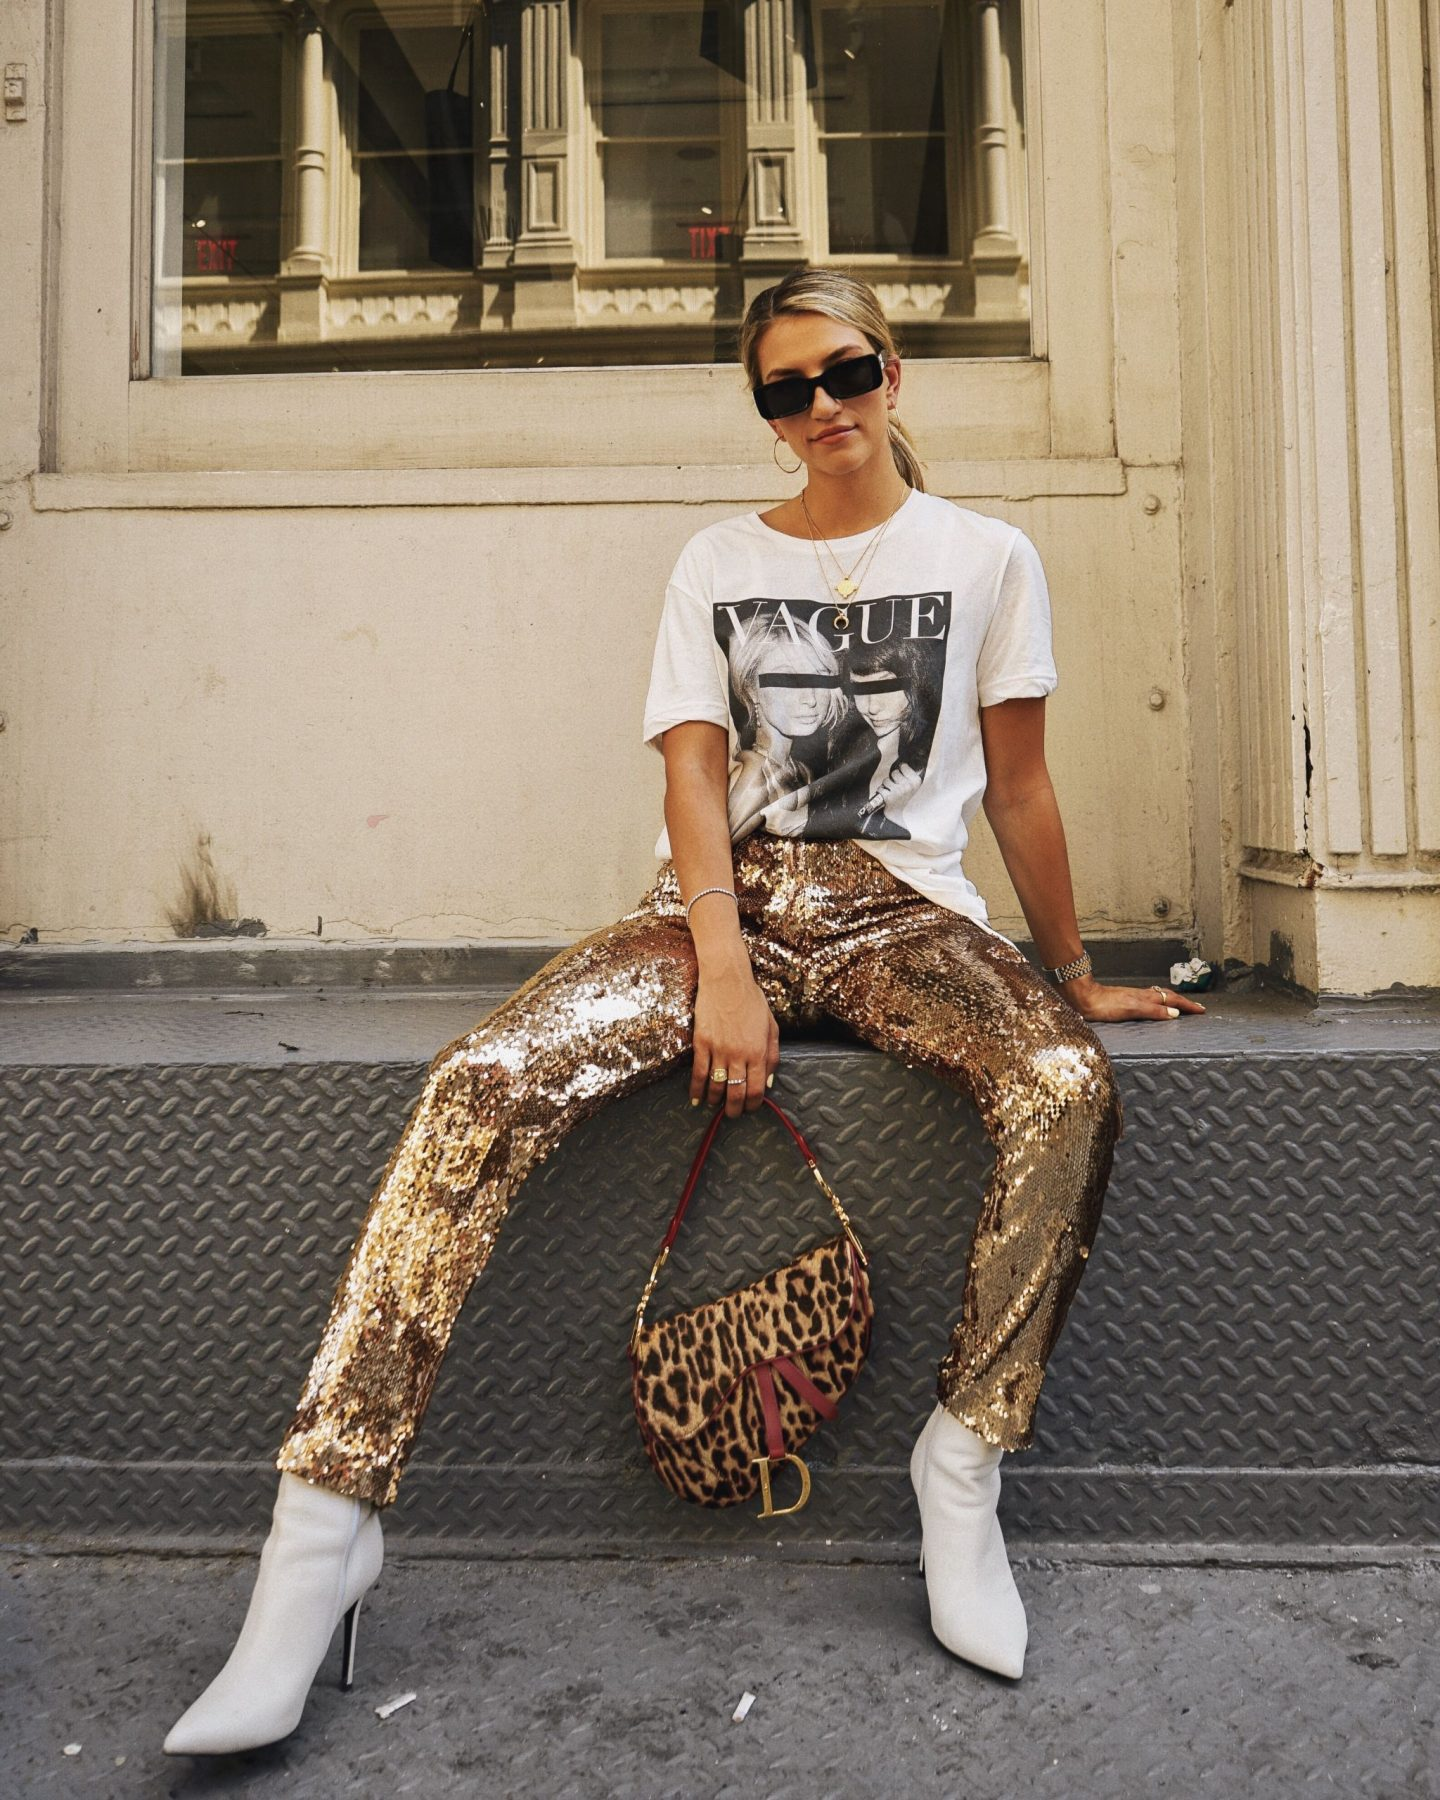 Cassandra DiMicco, Cass DiMicco, Dressed For Dreams, NYC, New York City, New York, Street Style NYC, Street Style 2018, NYC Street Style, NYC Outfit Inspo Street Style Outfits, 2018 Trends, Summer Style, Summer Outfit Inspo, NYC Fashion Blogger, NYC Fashion Blogger, NYC to do list, NYC to do, NYC bucket list, NYC Instagram Spots, Milly Sequin Pants, Ksubi Vague Graphic Tee, Milly, Sequin Pants, Ksubi Tee, Christian Dior Saddle Bag, Dior Saddle Bag, Vintage Dior, Leopard Saddle bag, Off white sunnies, Off white, Tony Bianco Freddy booties, Tony Bianco, white booties